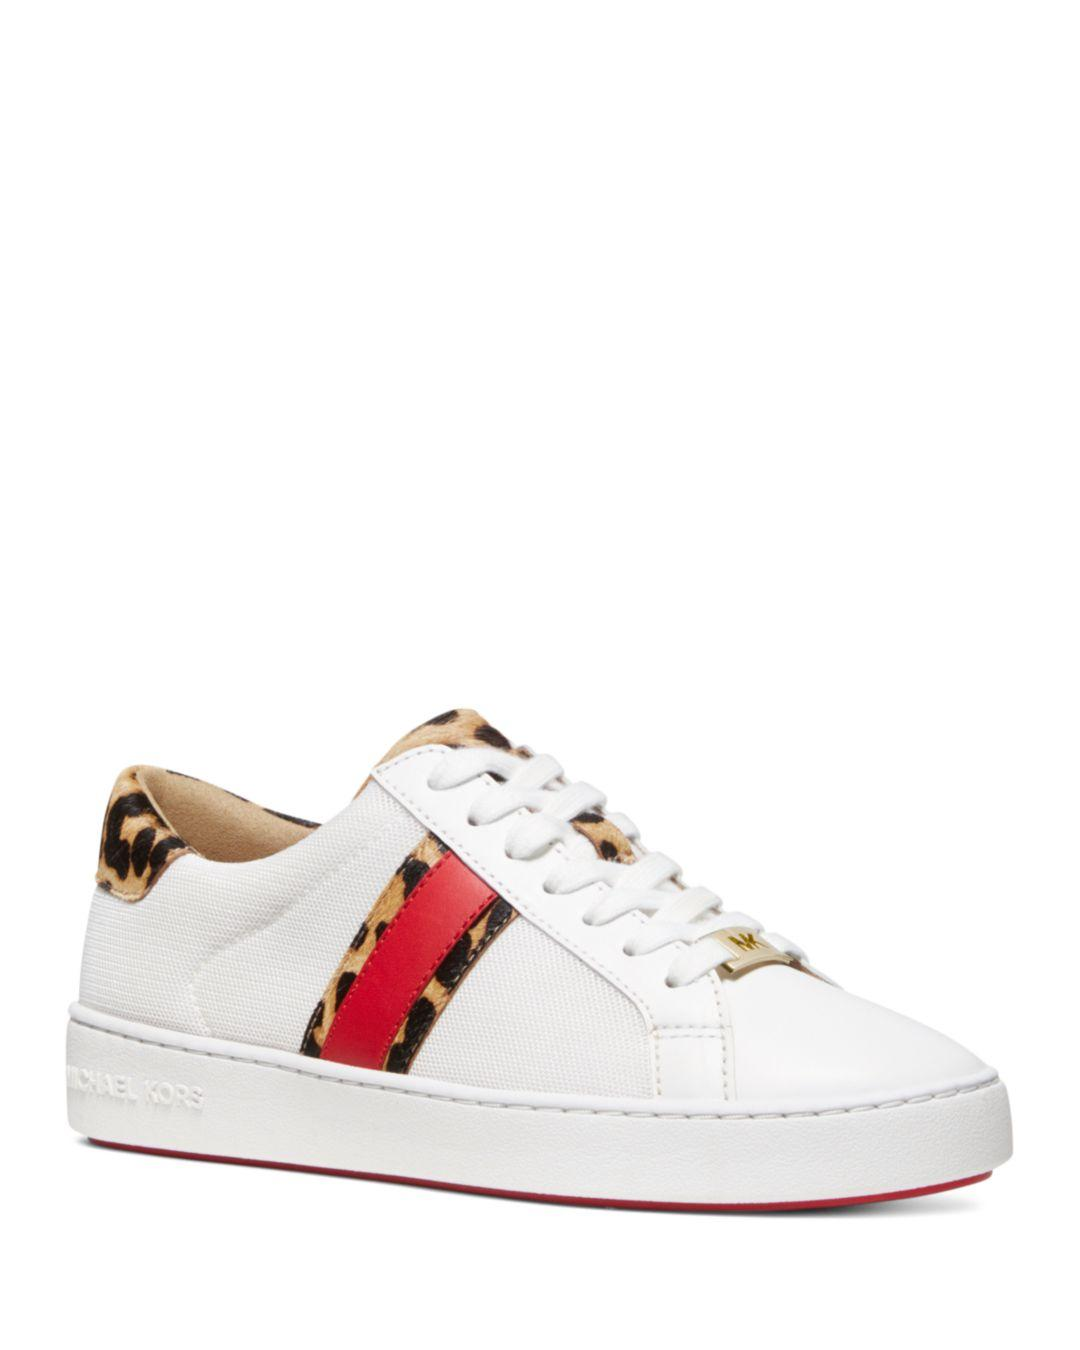 a714adc8c56 Lyst - Michael Kors Michael Irving Trainers in White - Save 29%